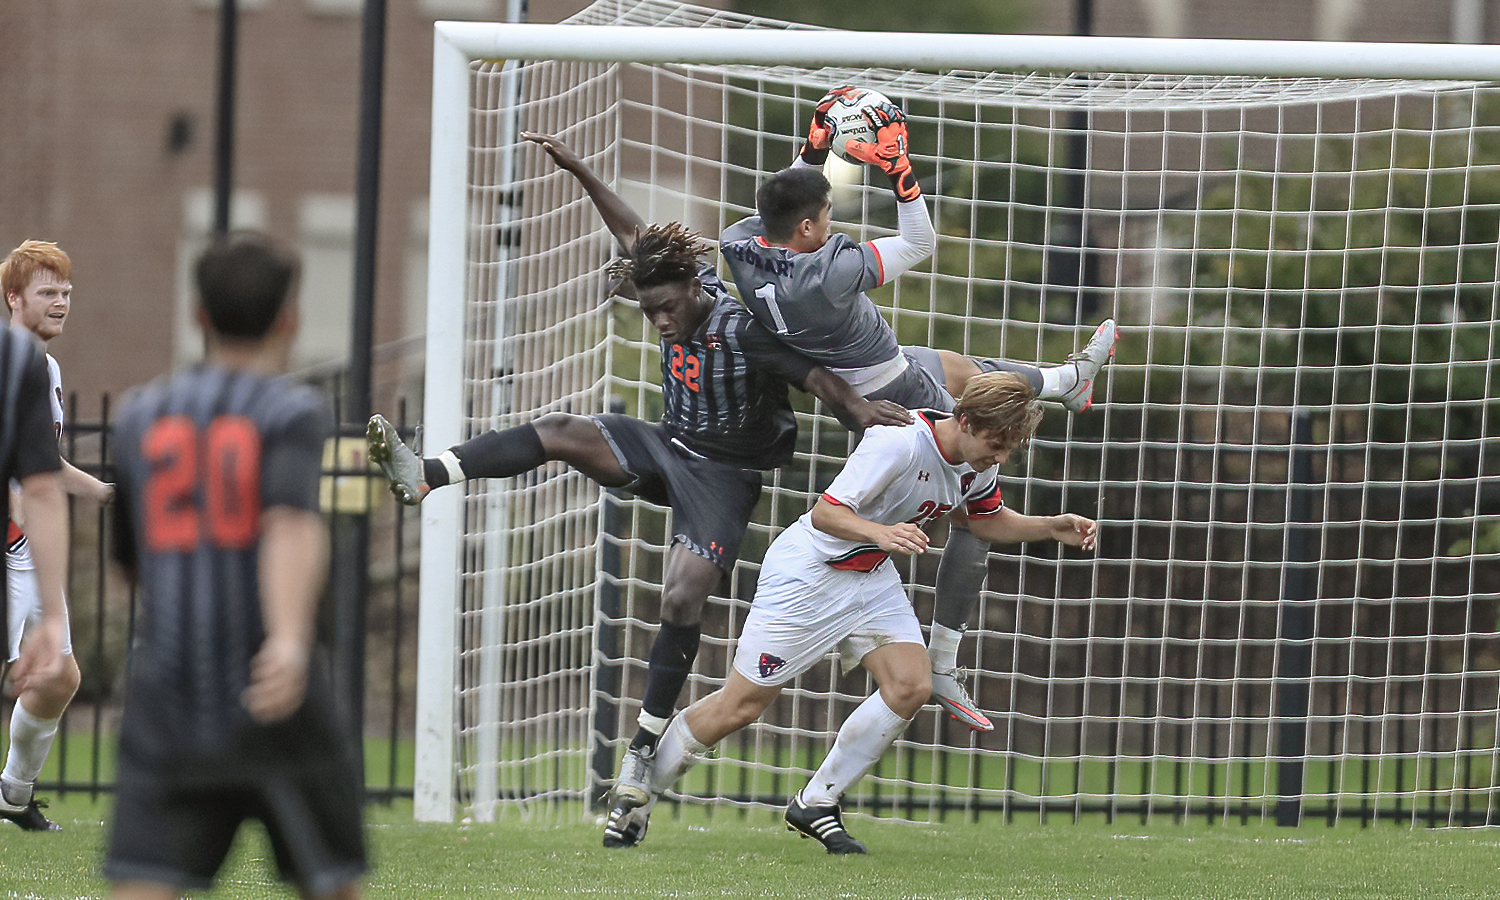 Guillermo Castaneda Chang makes the save in the 2nd half of the RIT game on Cozzens Field Wednesday.  Chang made five saves and earned his first shut out of his collegiate career in the 0-0 game.